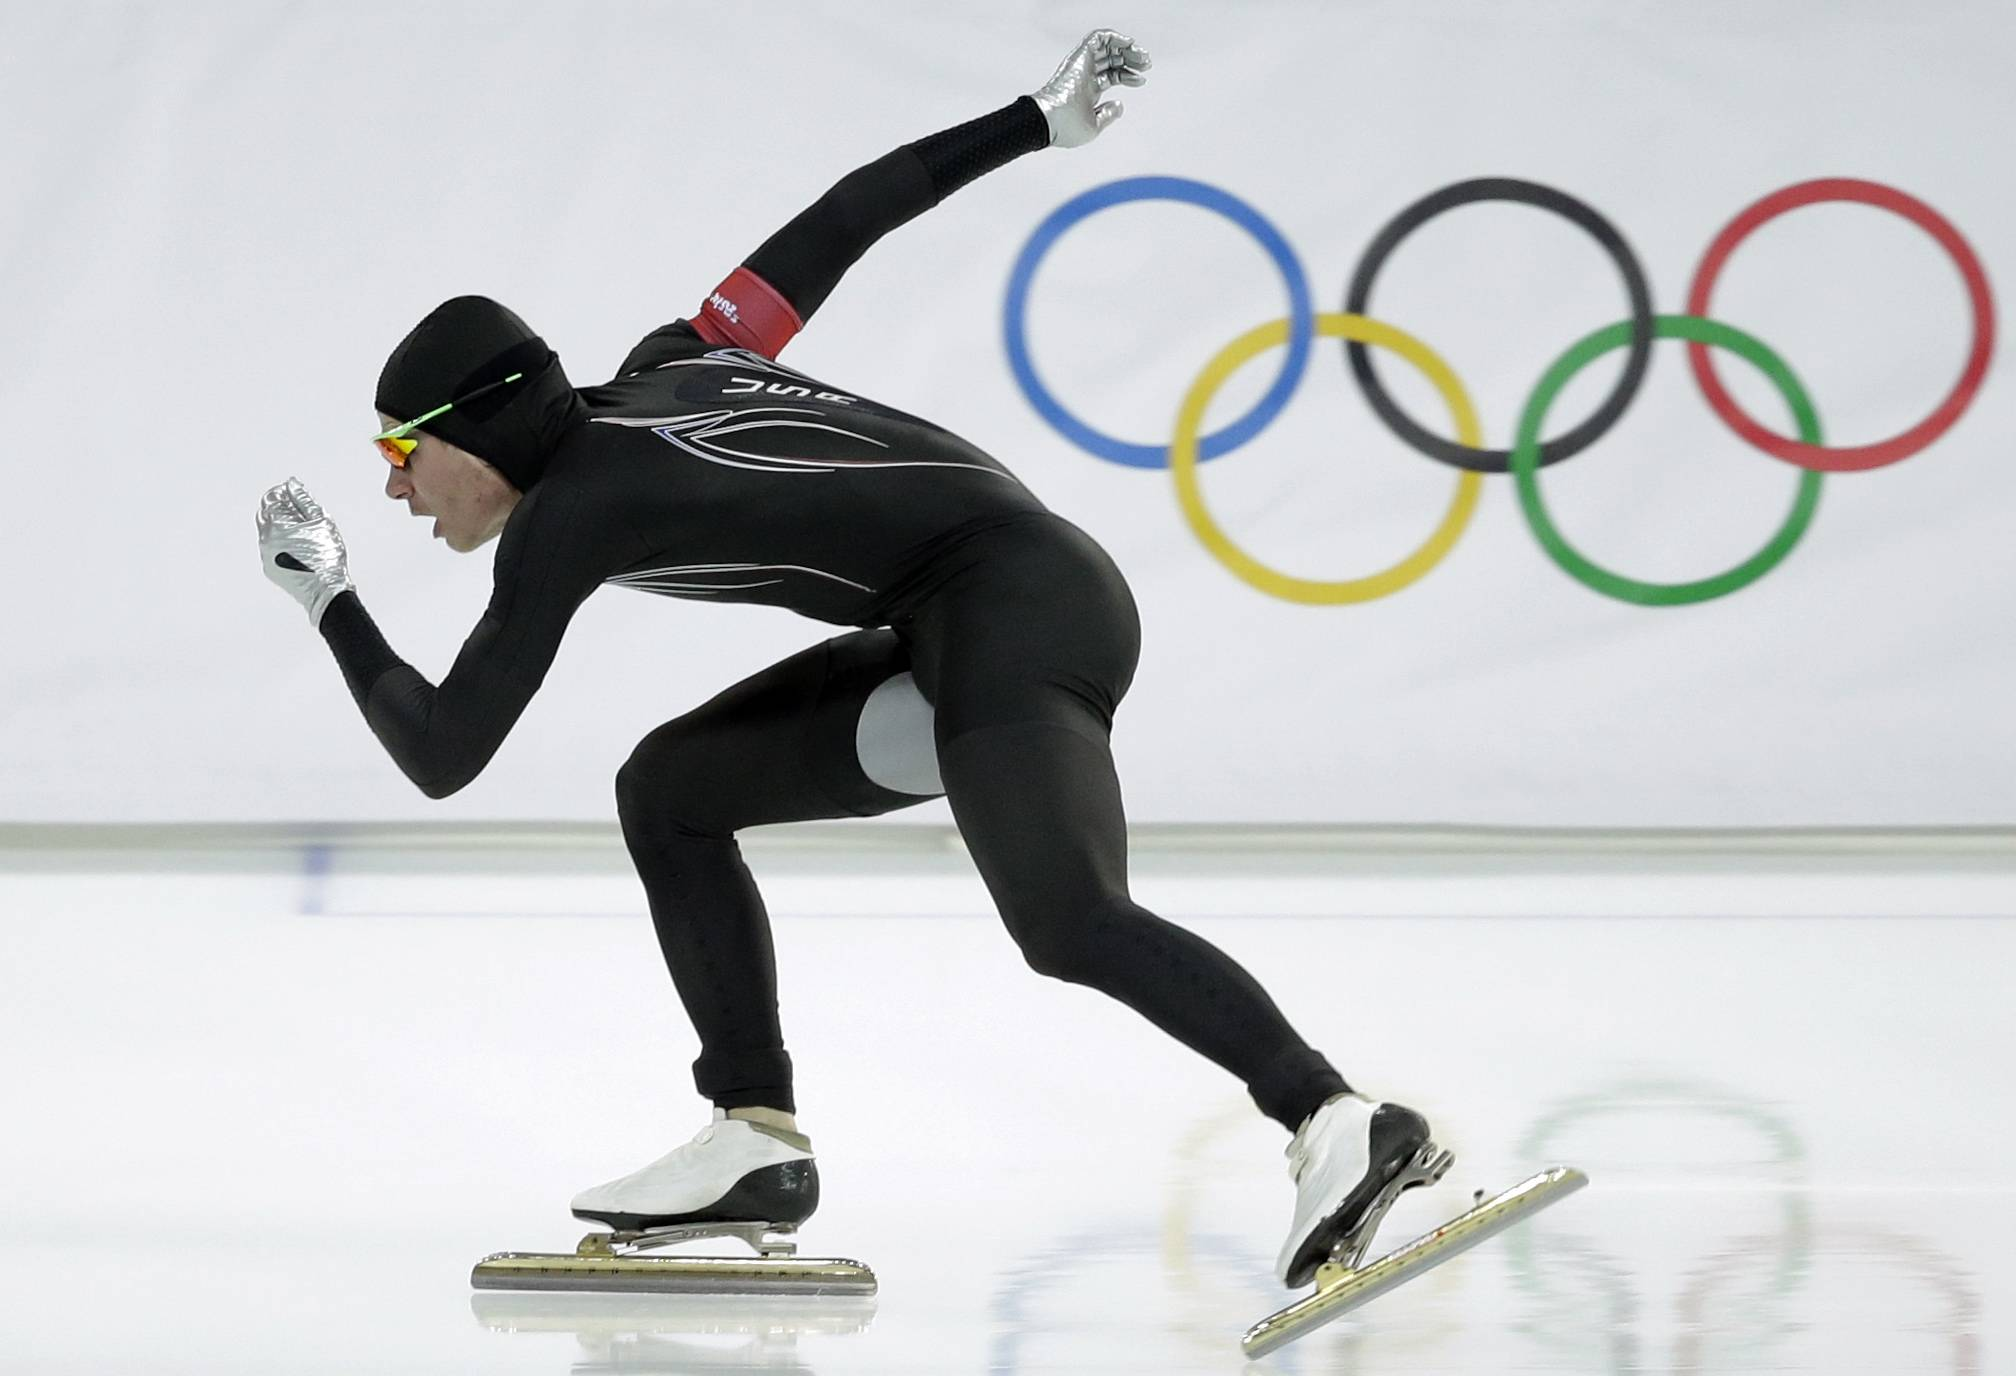 After a strong season on the World Cup circuit, the U.S. speedskating team has had a miserable performance the first week of the Sochi Olympics — and much of the speculation has turned to its new high-tech Under Armour skinsuit developed with help from aerospace and defense giant Lockheed Martin.